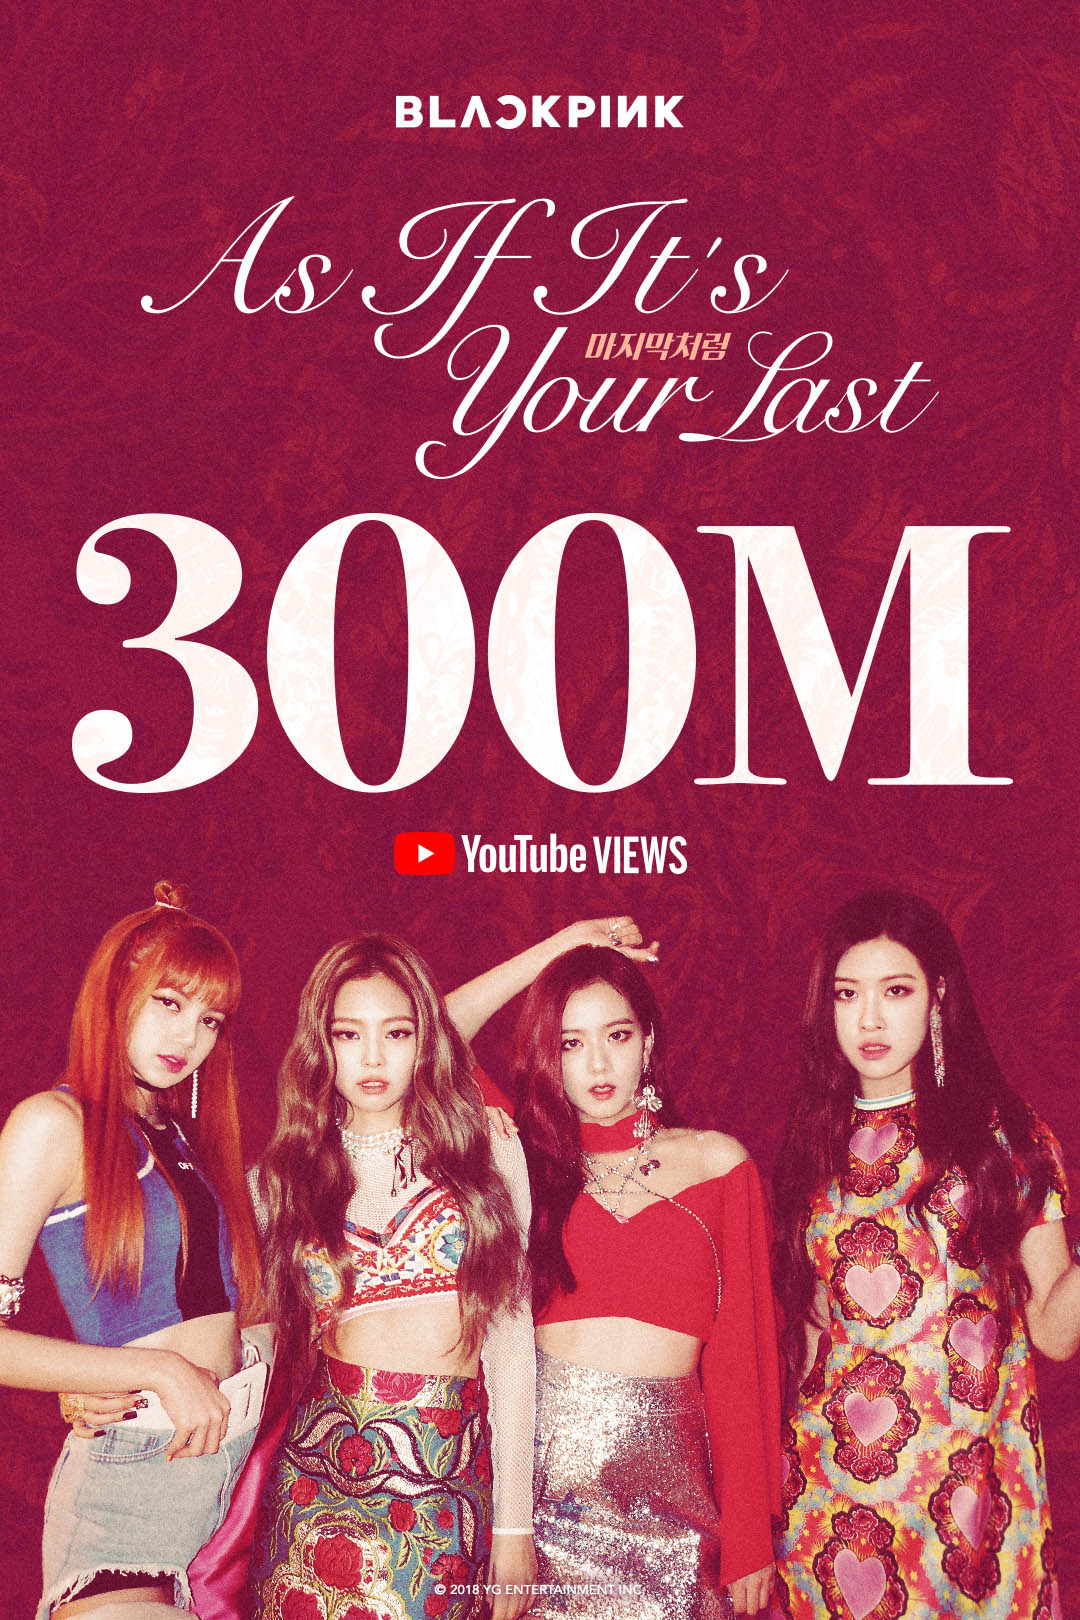 Black Pink's 'As If It's Your Last' music video hits 300 million